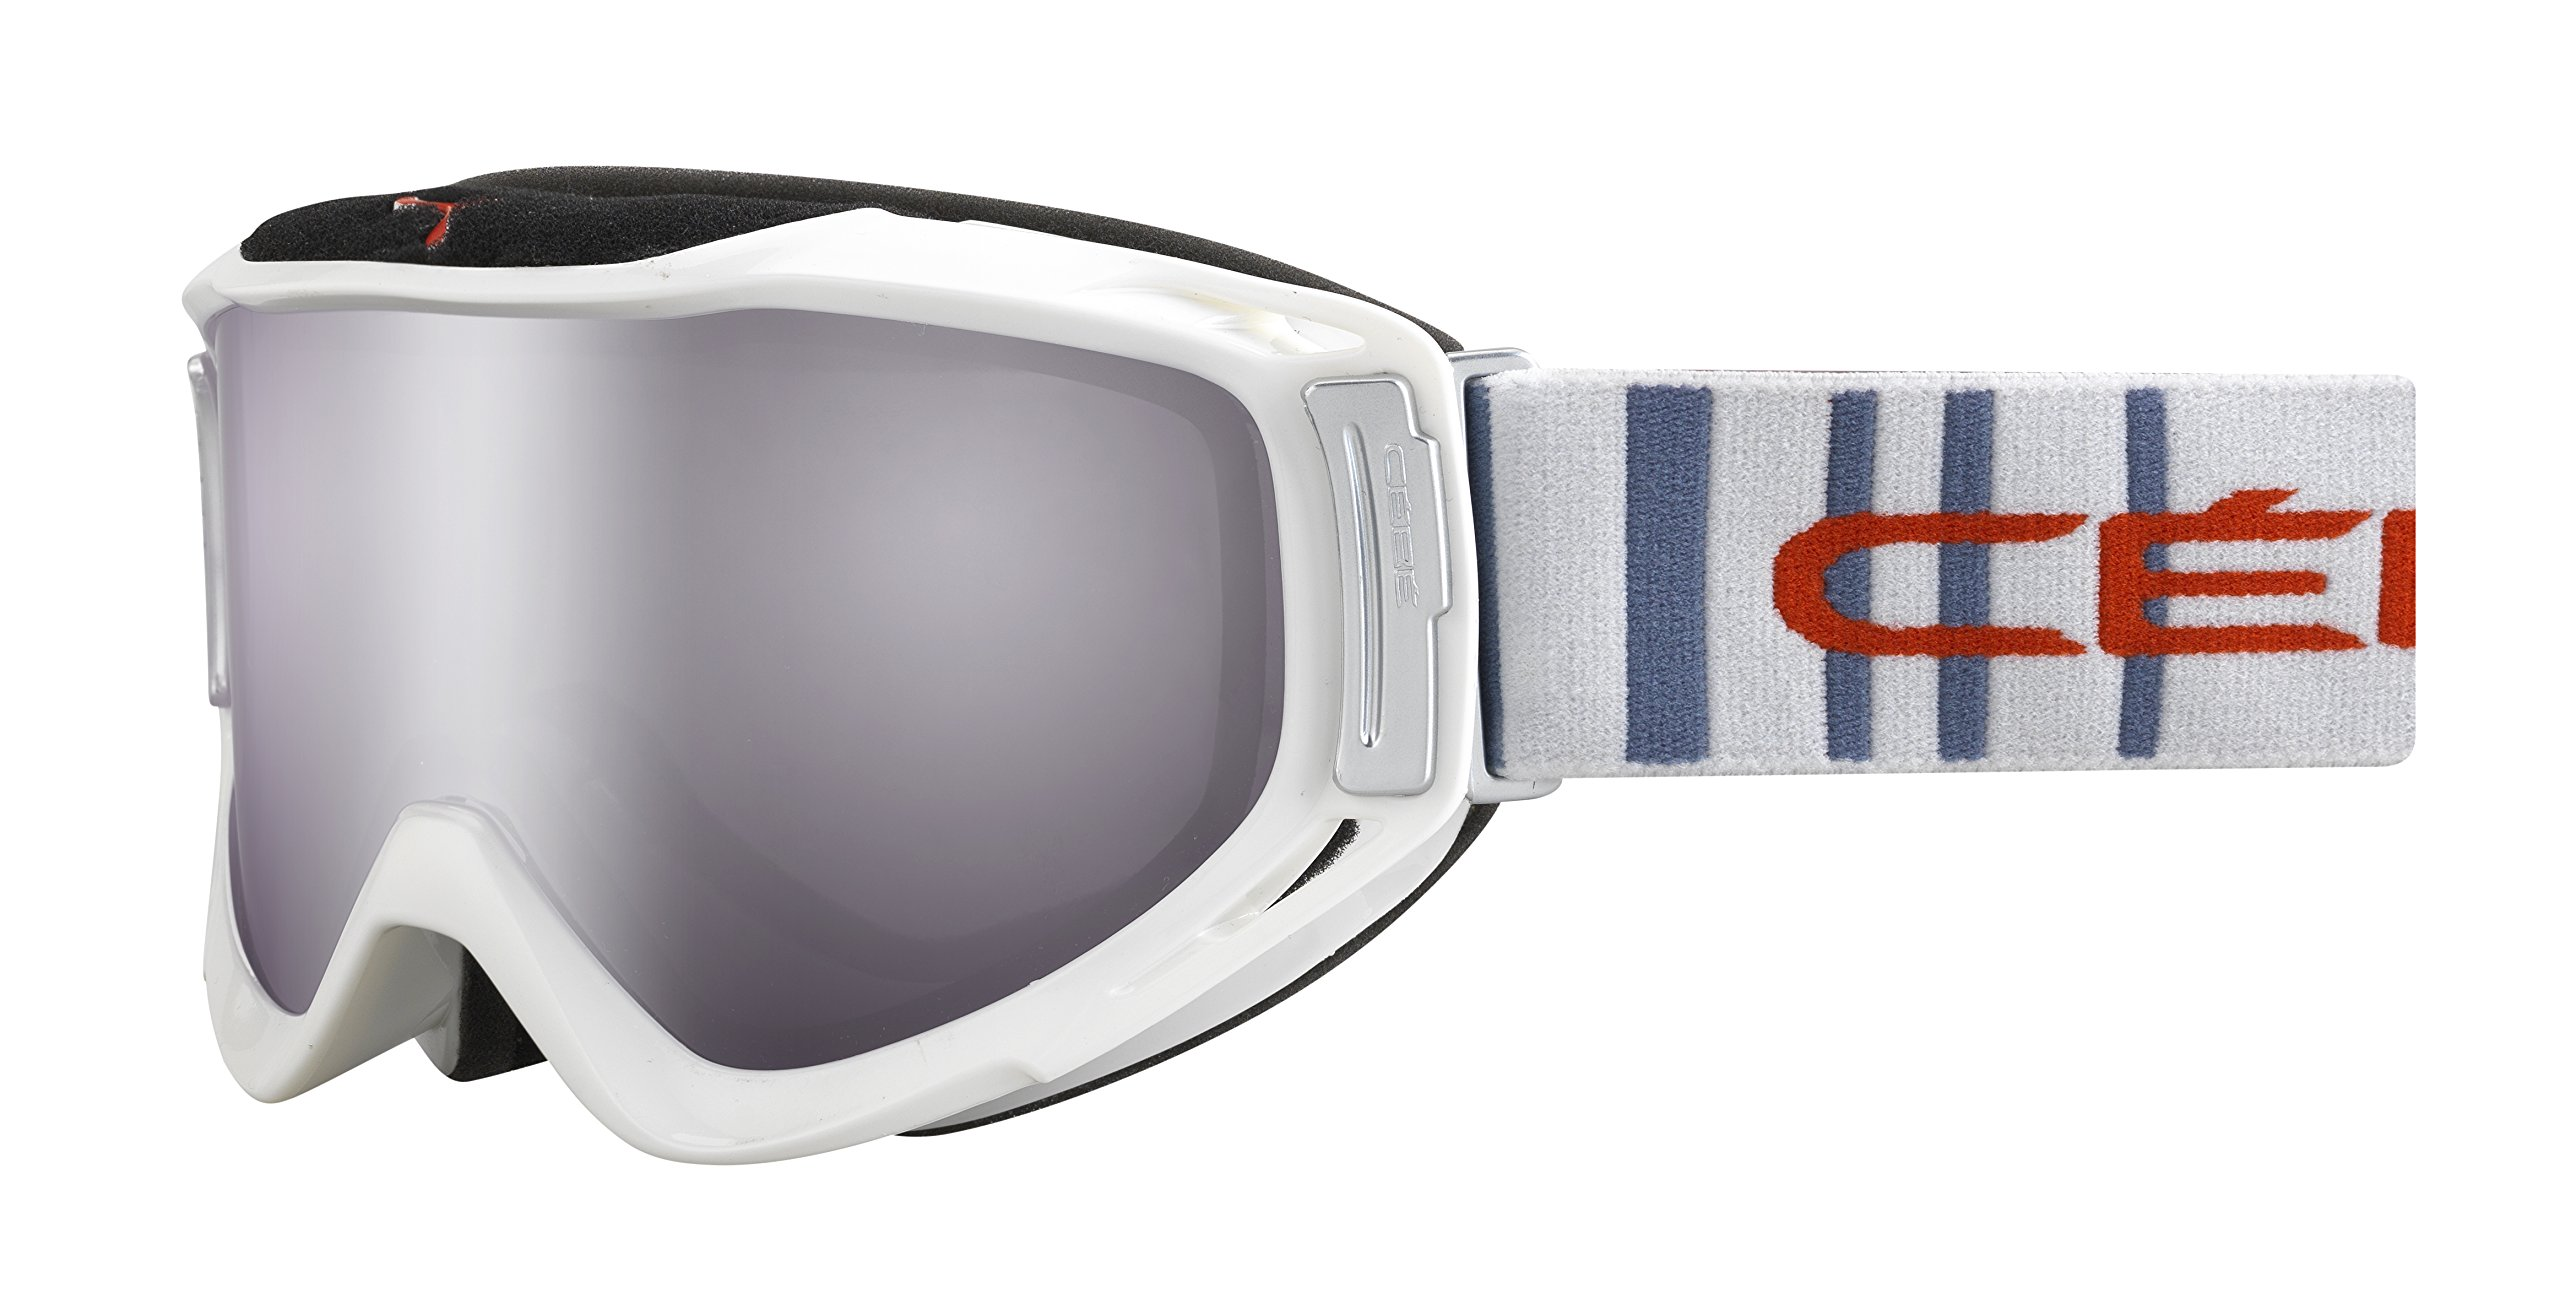 Cébé Skibrille Legend Light Flash Mirror, Grau/Rot, L, CBG44